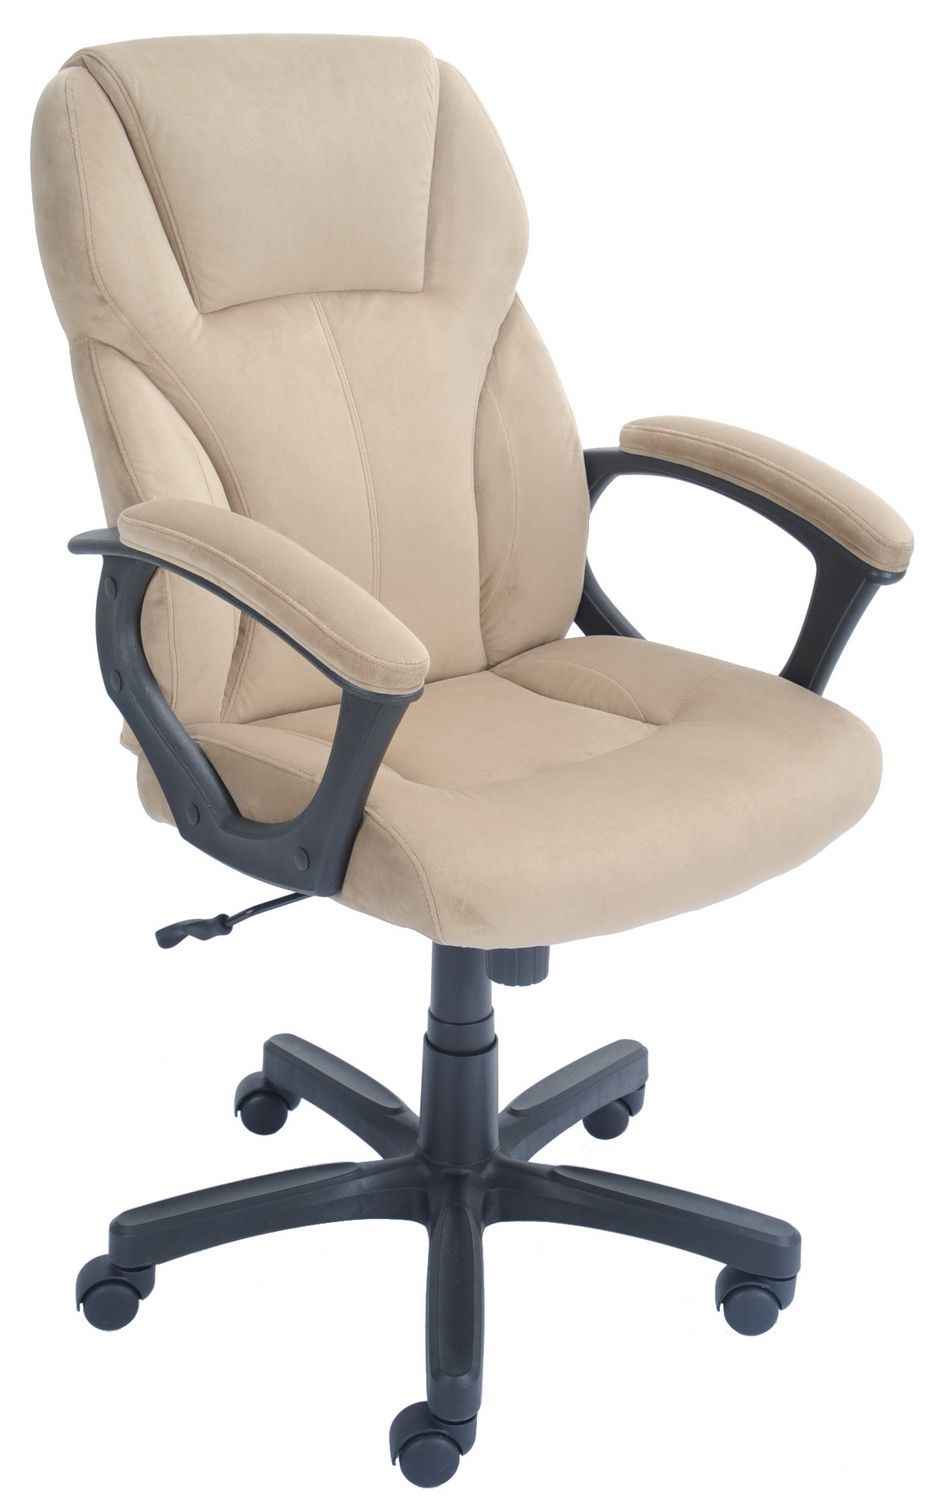 Mainstays Fabric Manager Chair Office Furniture Walmart Canada